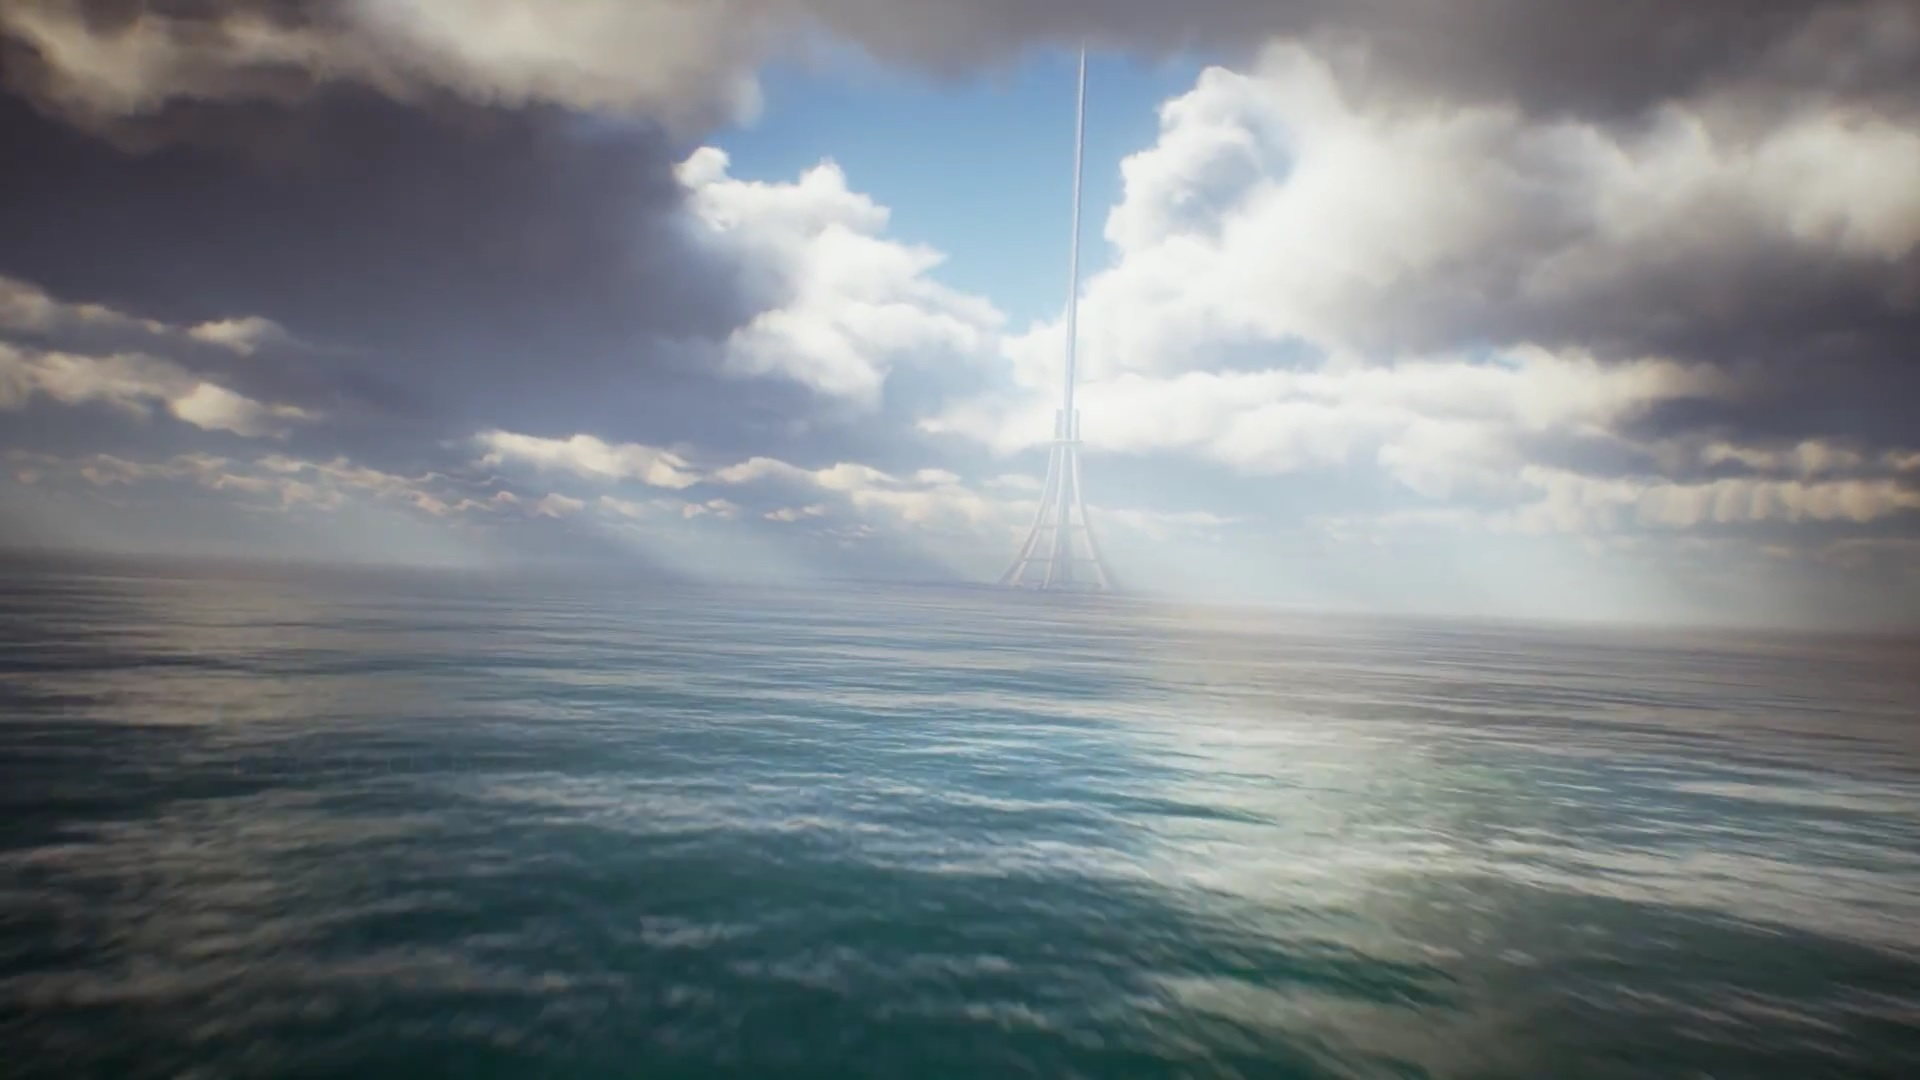 Image Ace Combat 7 Lighthouse In Distance Jpg Acepedia